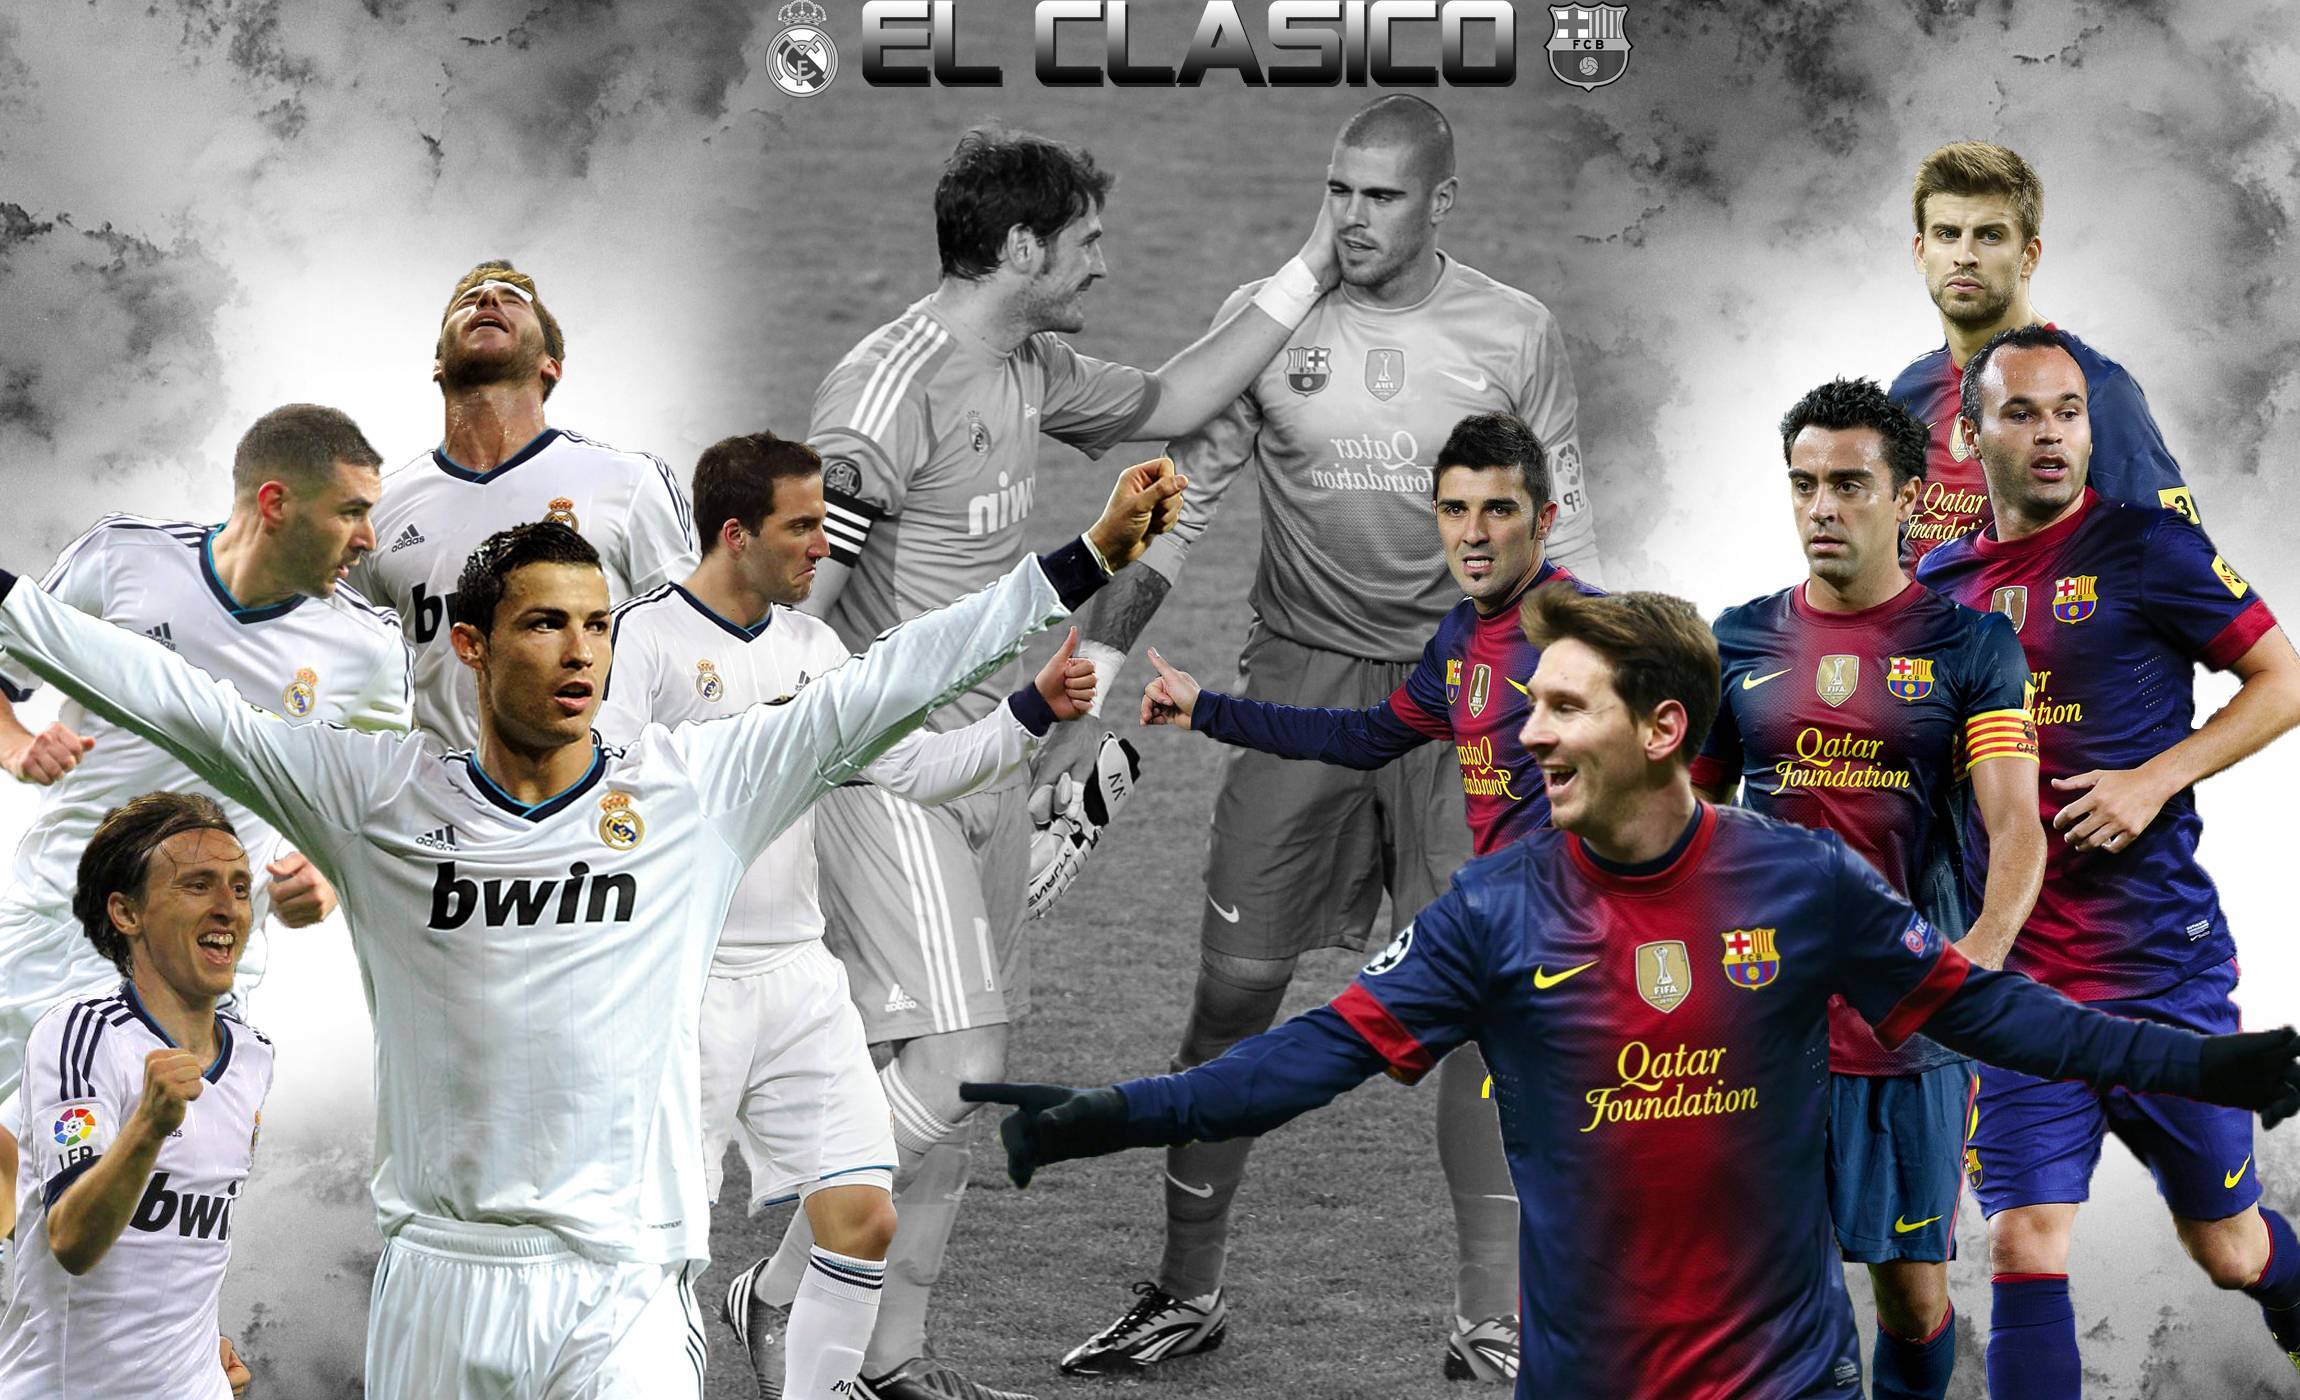 Real Madrid Vs Barcelona Wallpapers 2300x1400